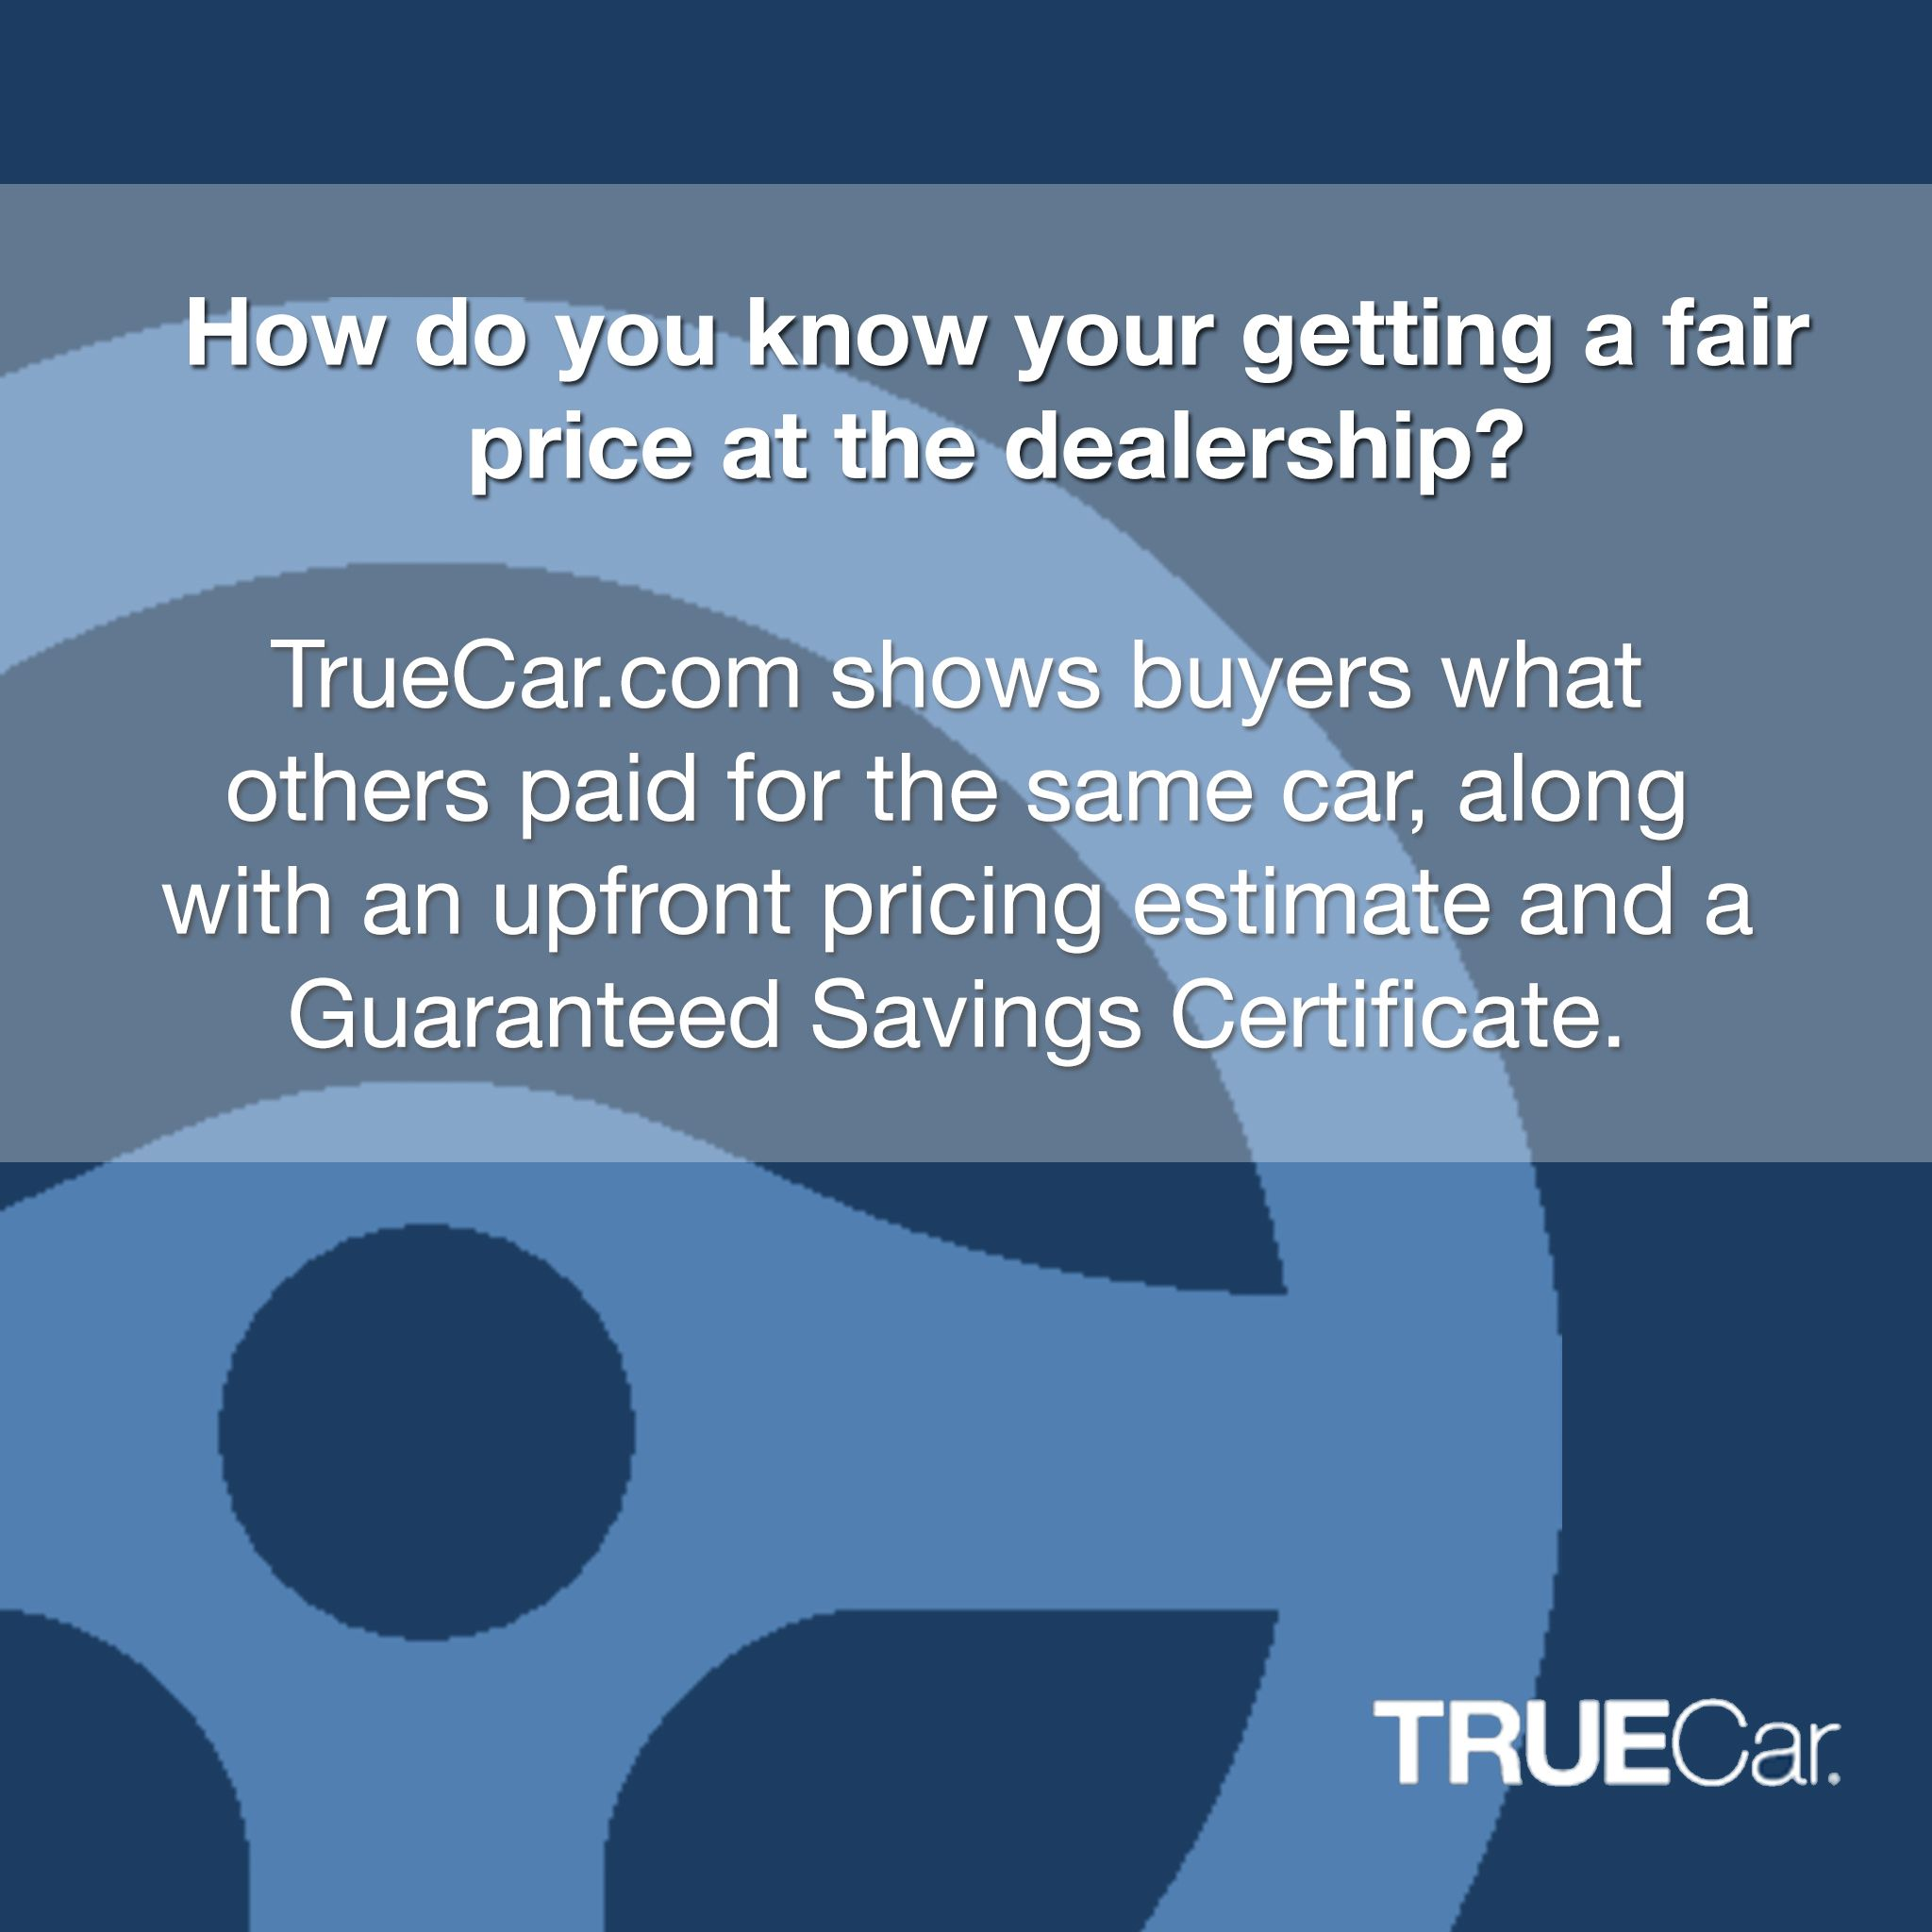 11 best How to TrueCar images on Pinterest